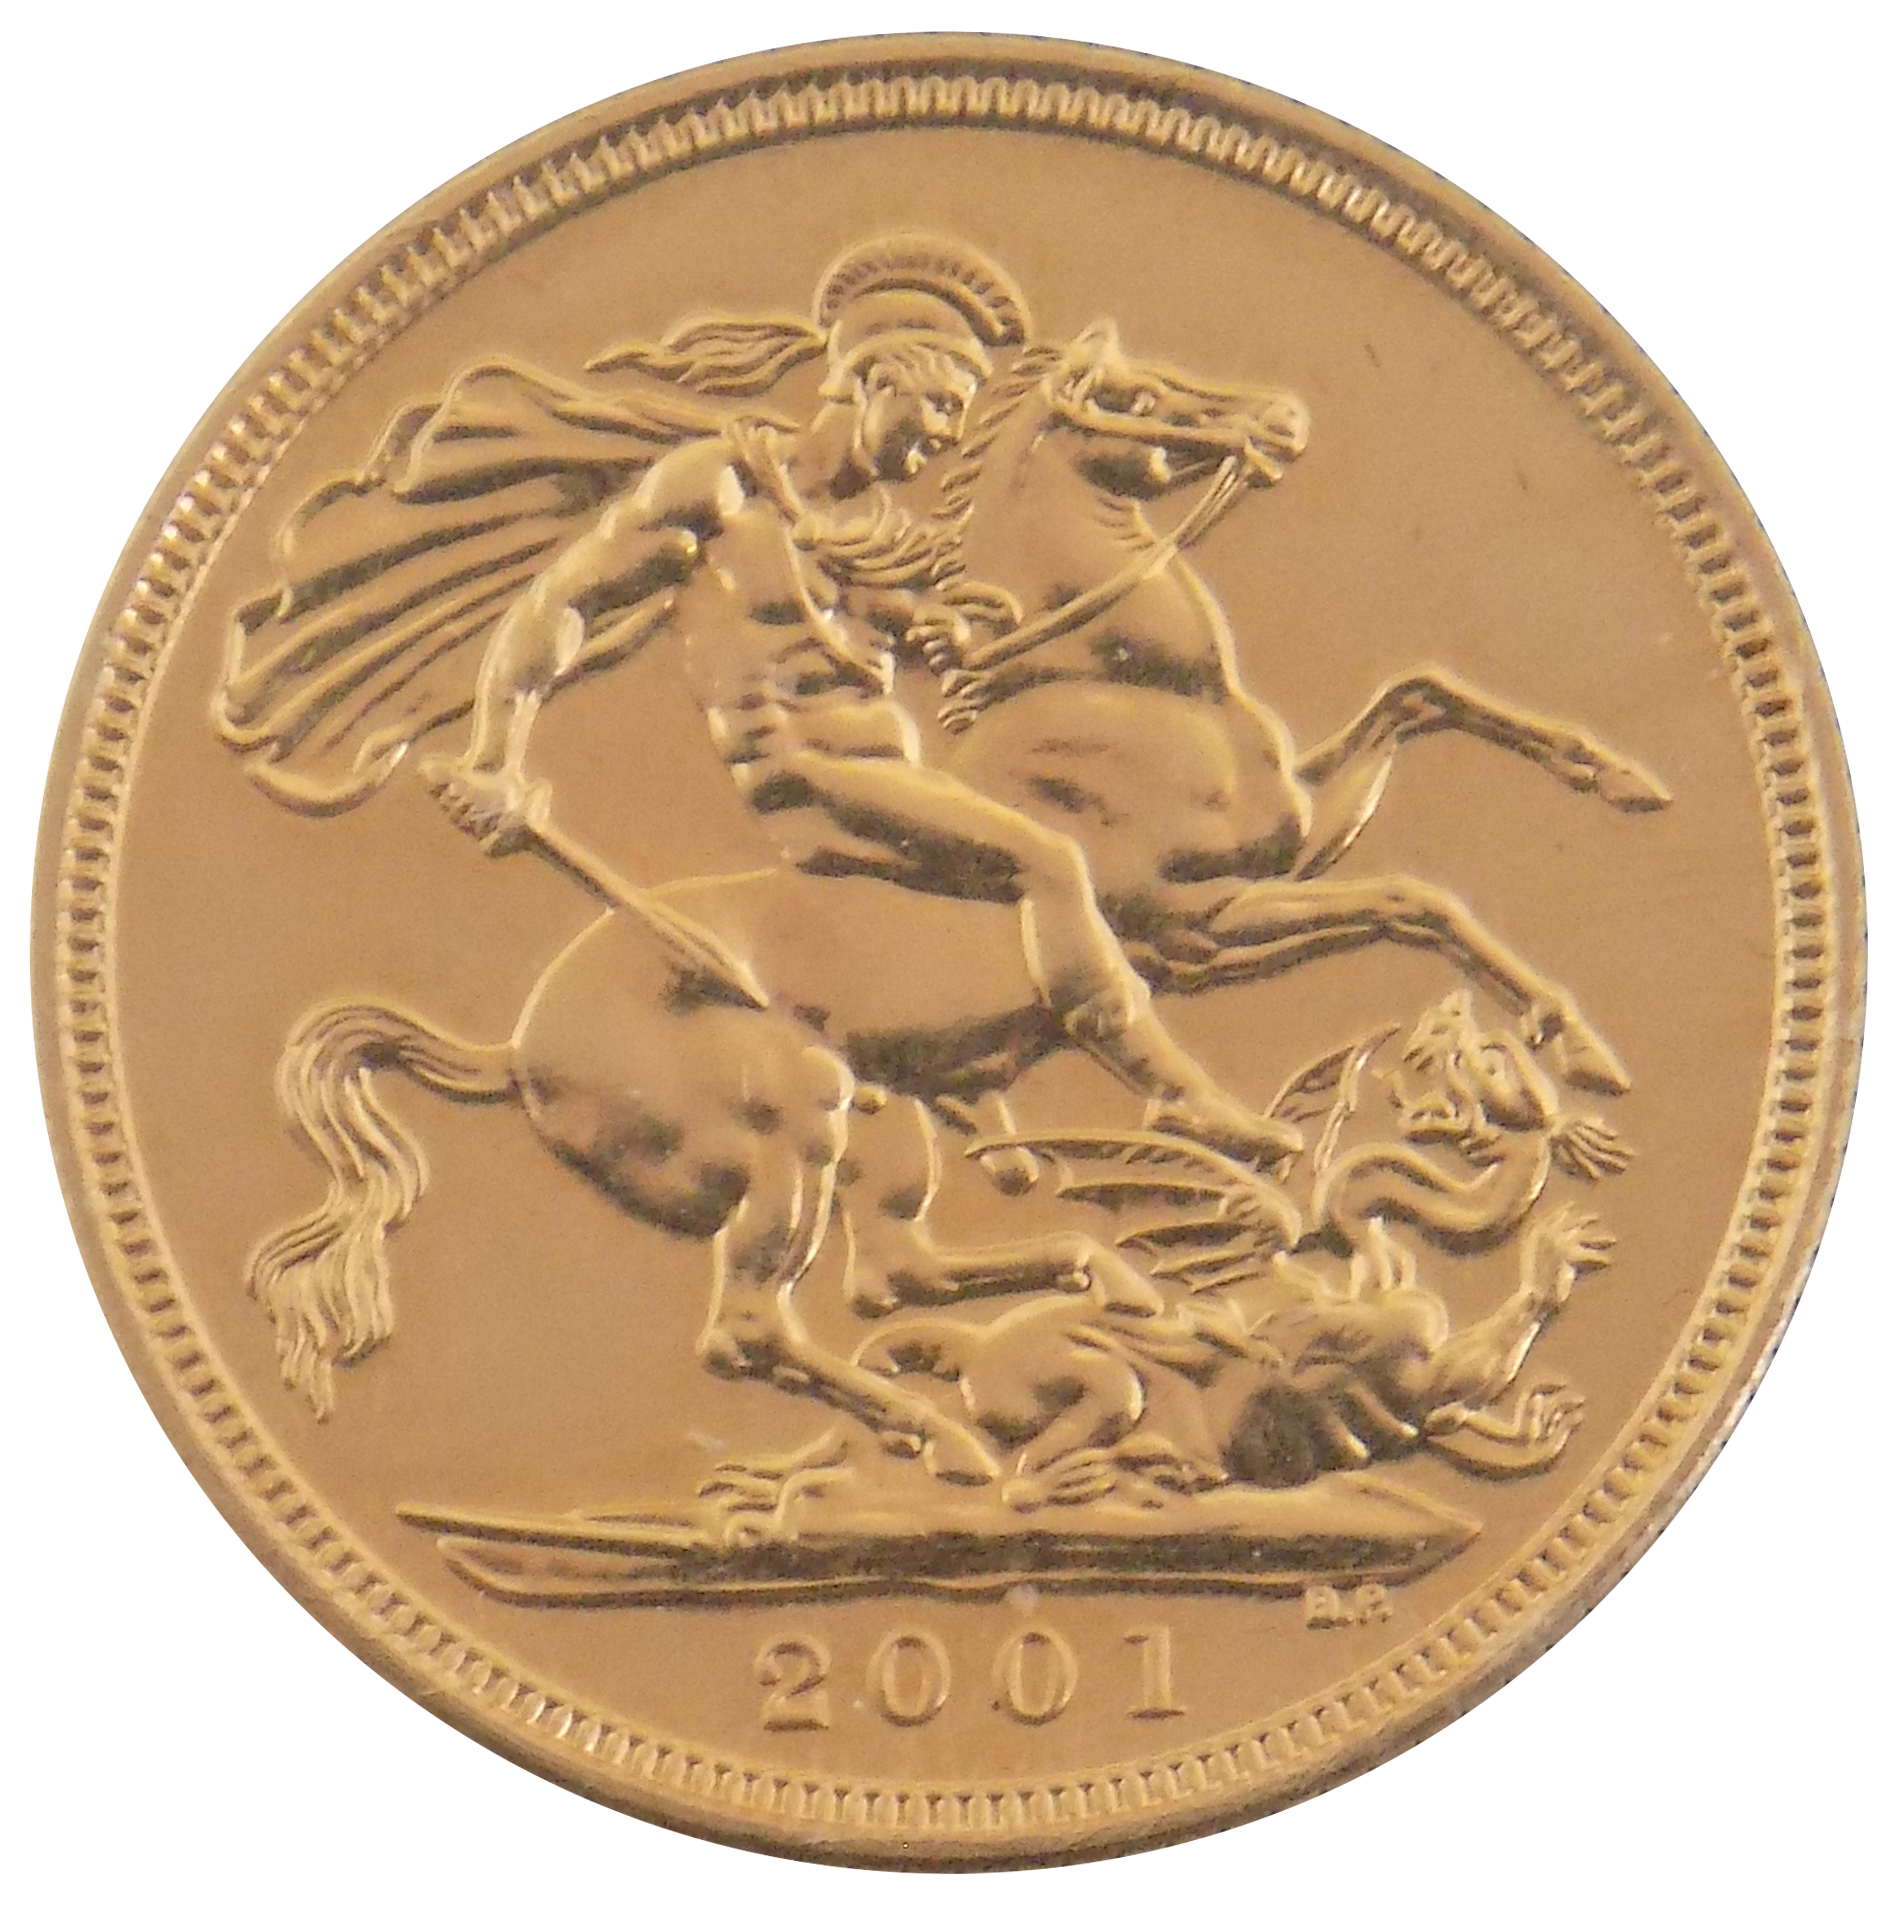 Pre-Owned 2001 UK Full Sovereign Gold Coin (Image 2)